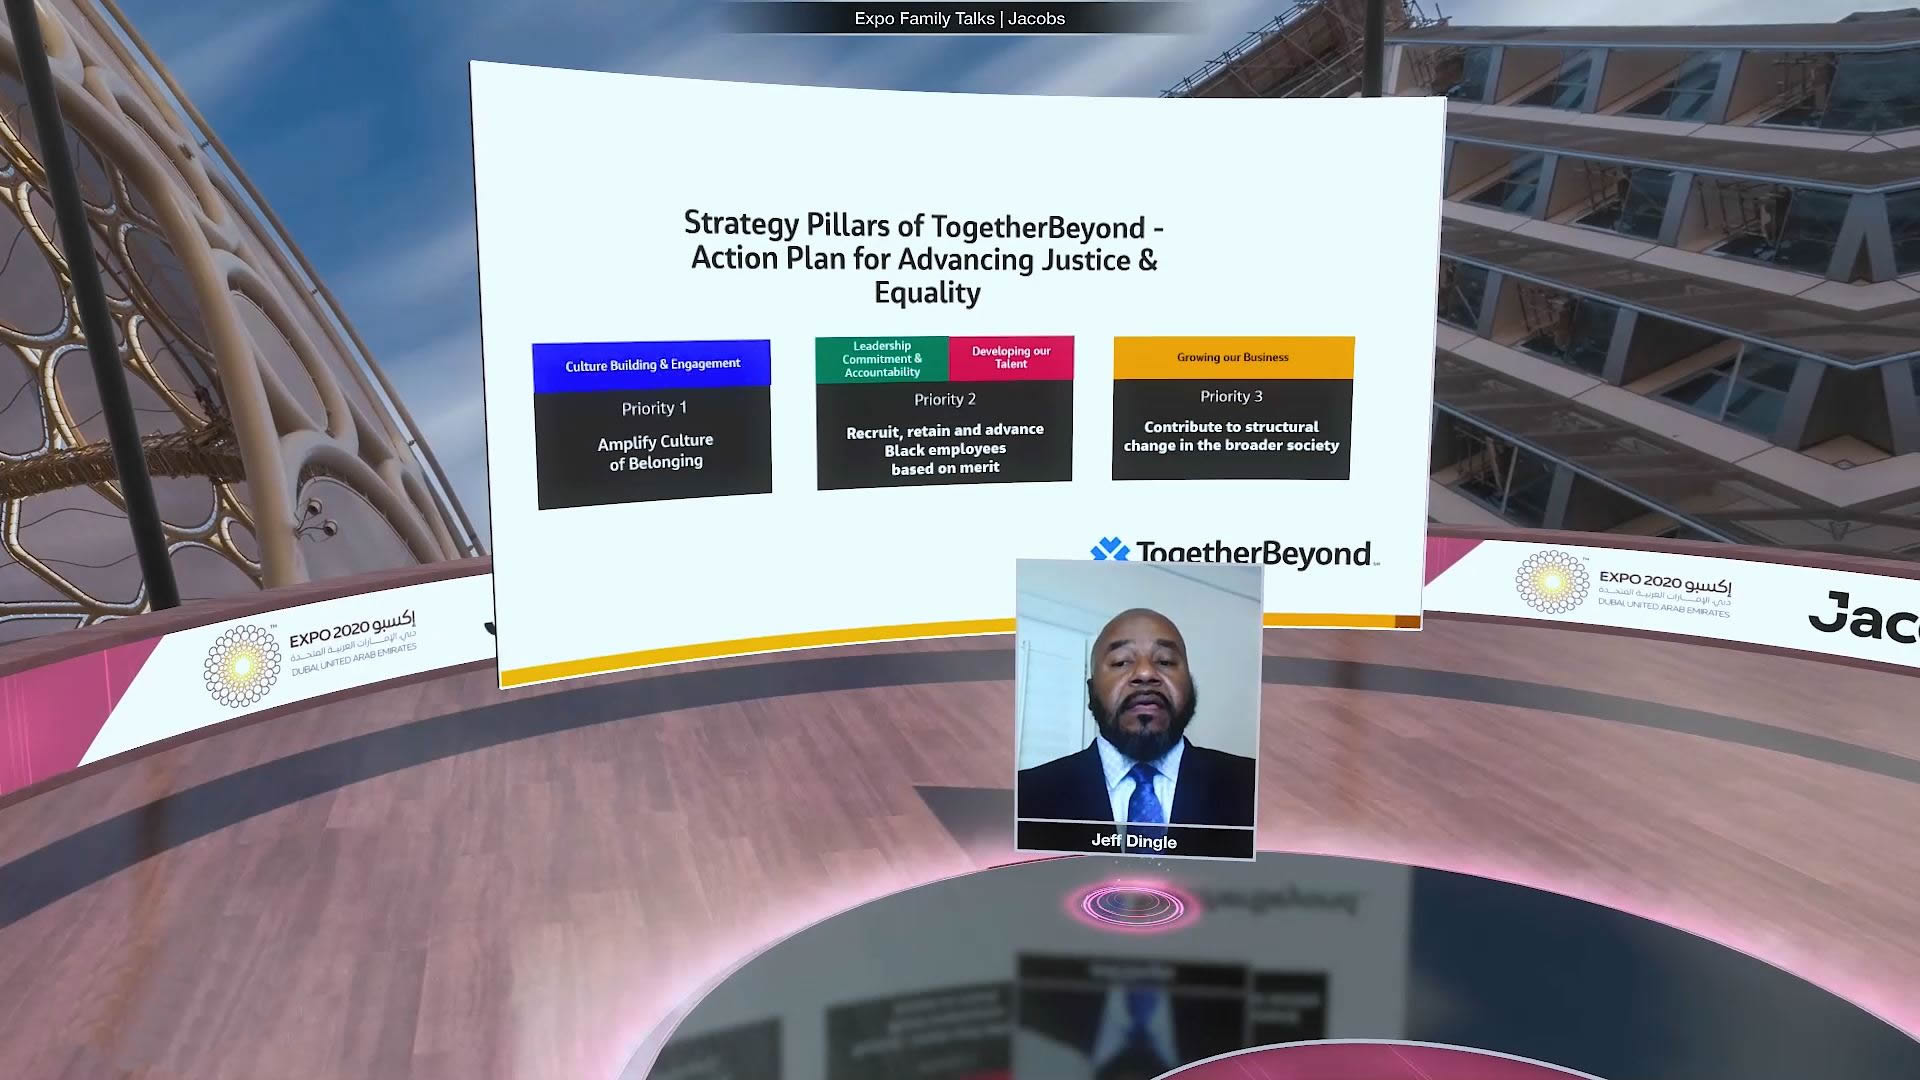 expo 2020 thematic weeks virtual event virtual speaker